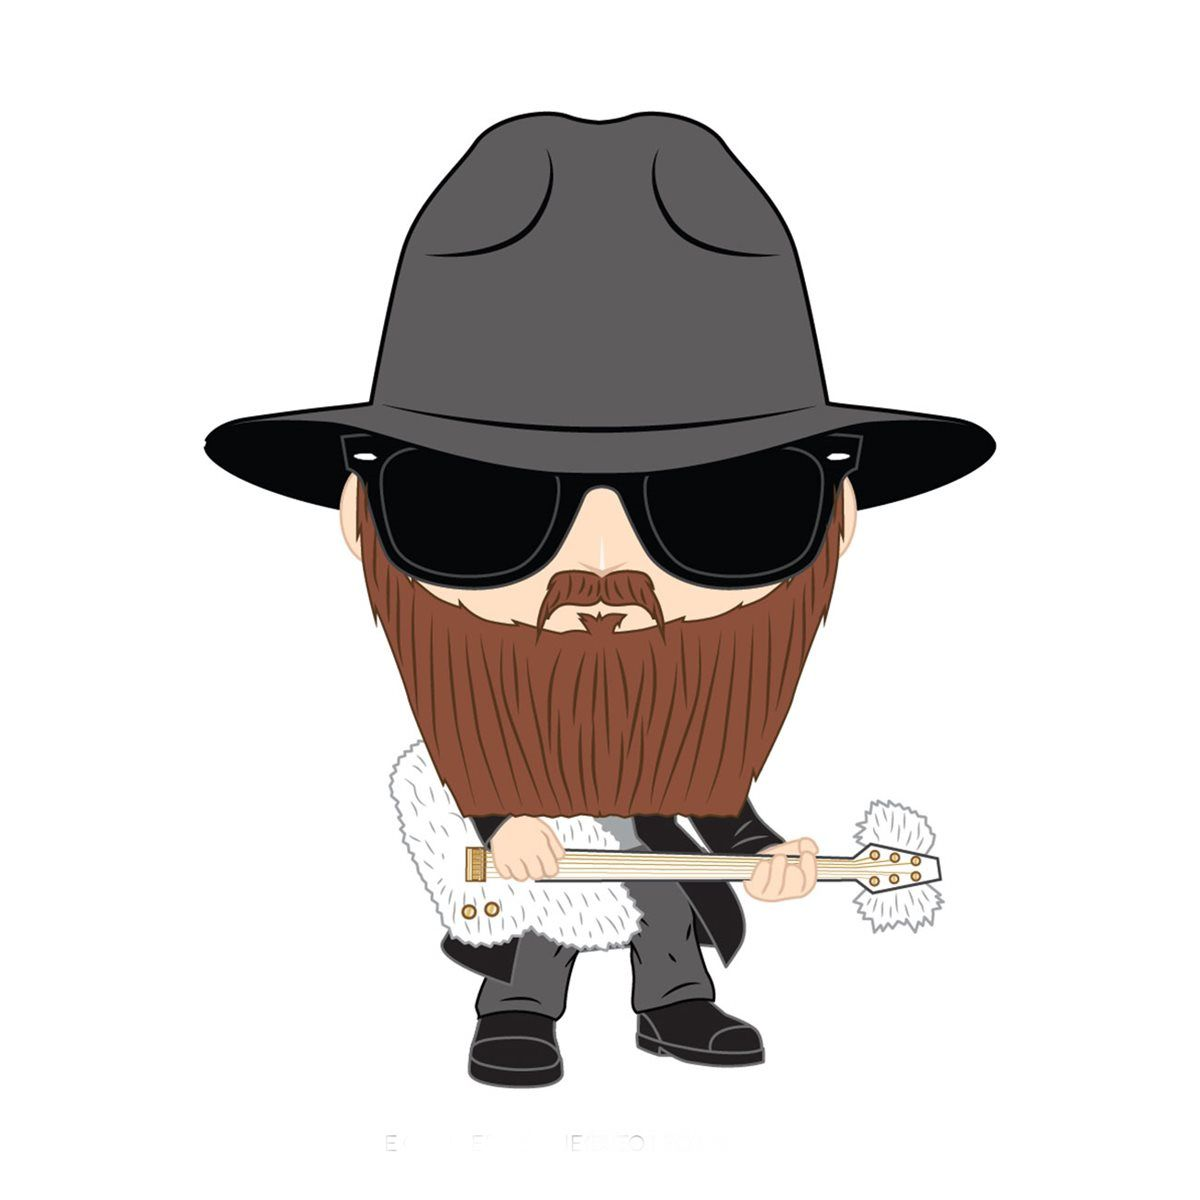 PRÉ VENDA: Funko Pop! Billy Gibbons: ZZ Top - Funko